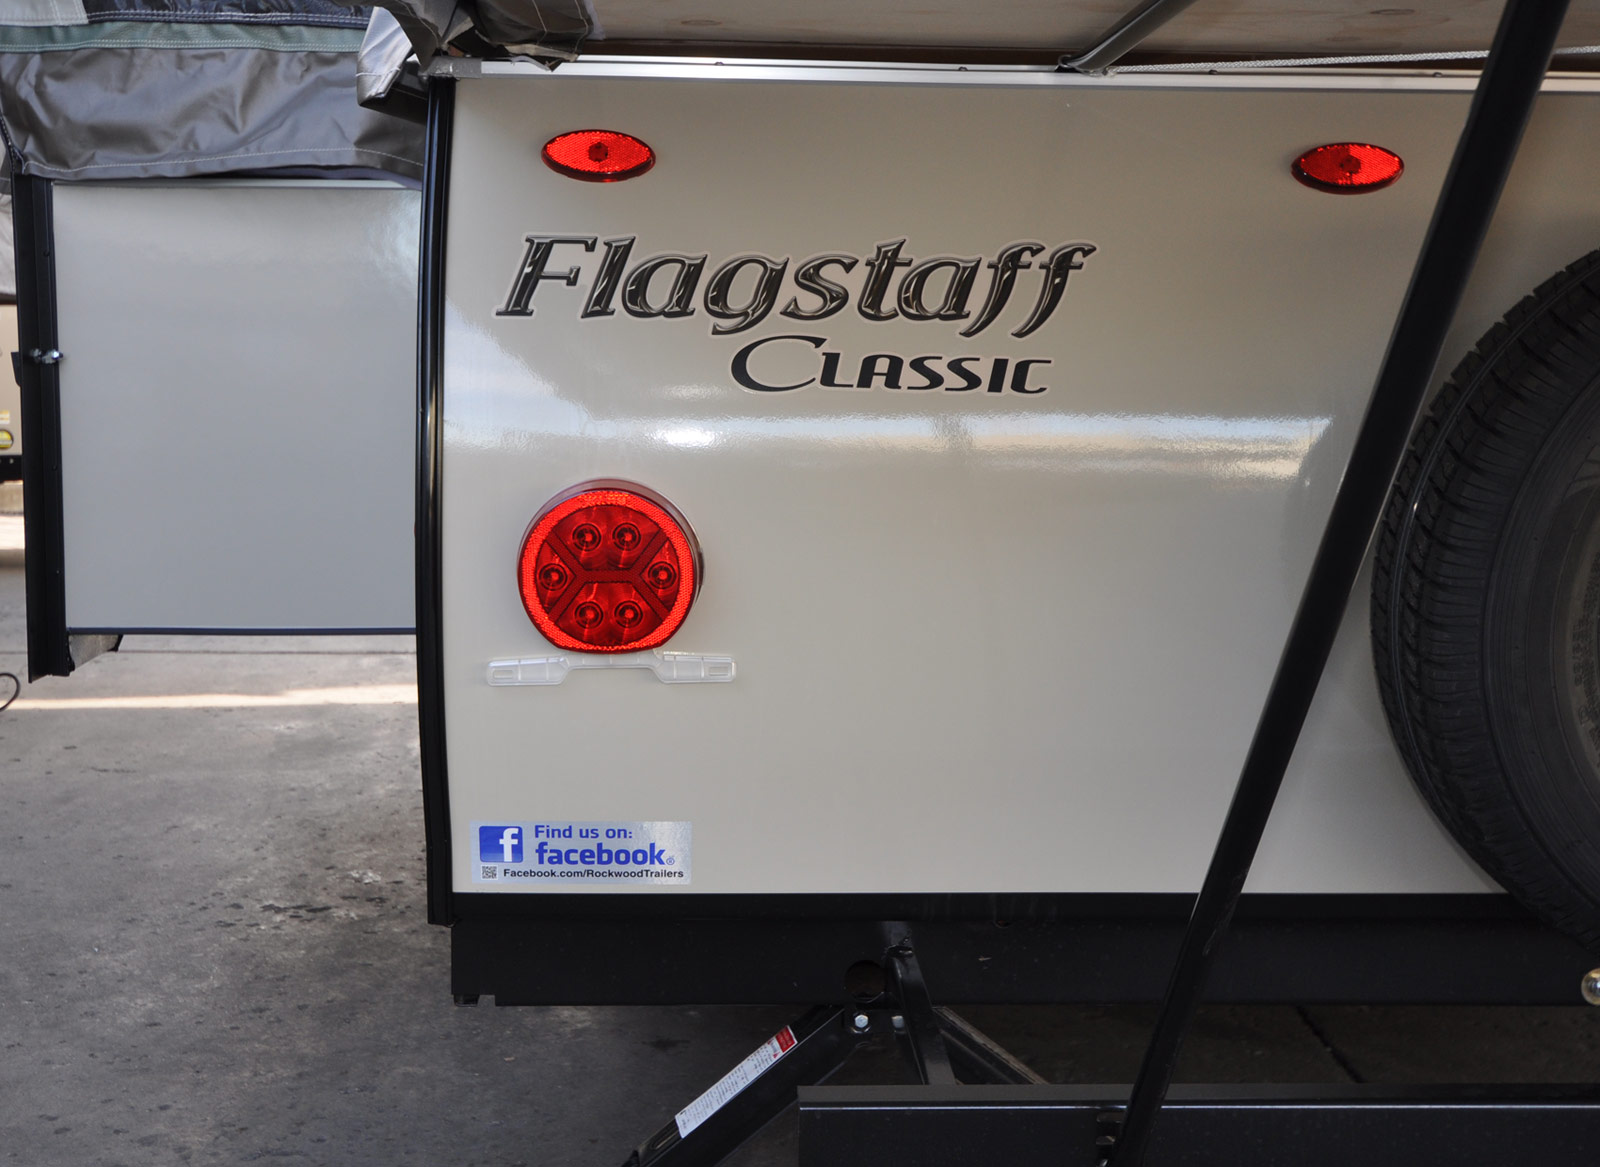 Flagstaff vs  Rockwood - What's the difference between brands?